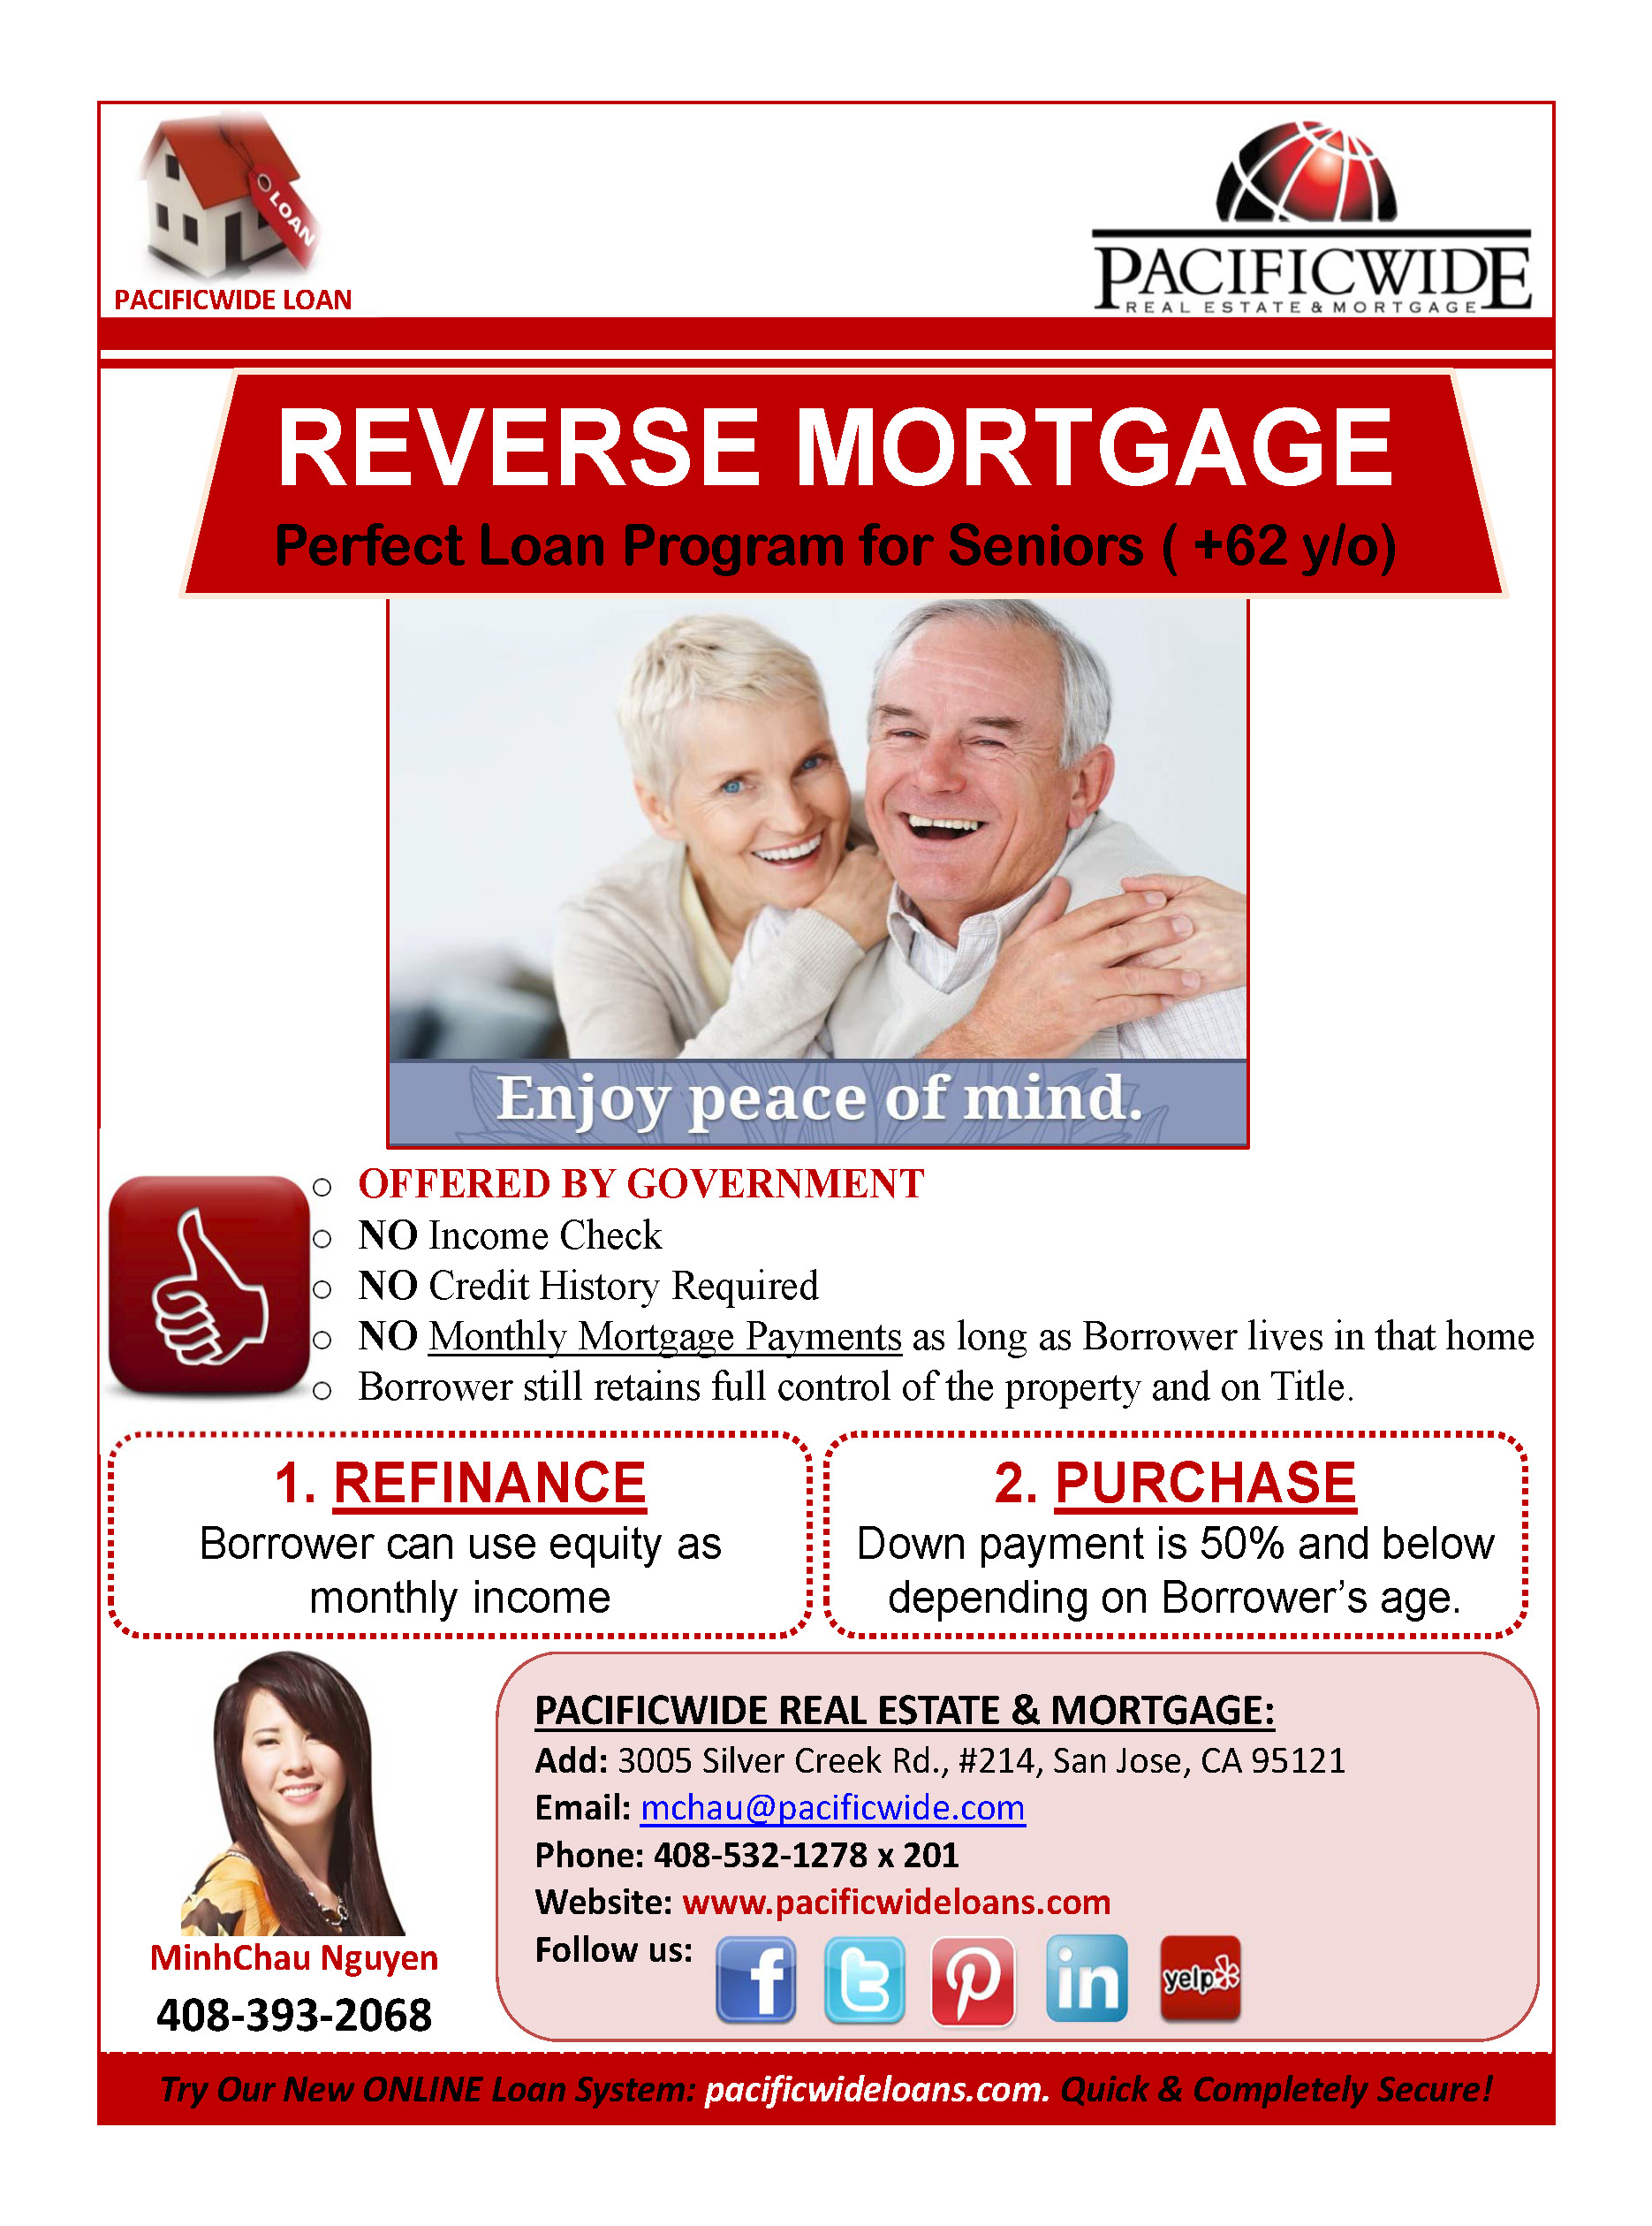 Reverse Mortgage (For Senior Over 62 y/o)